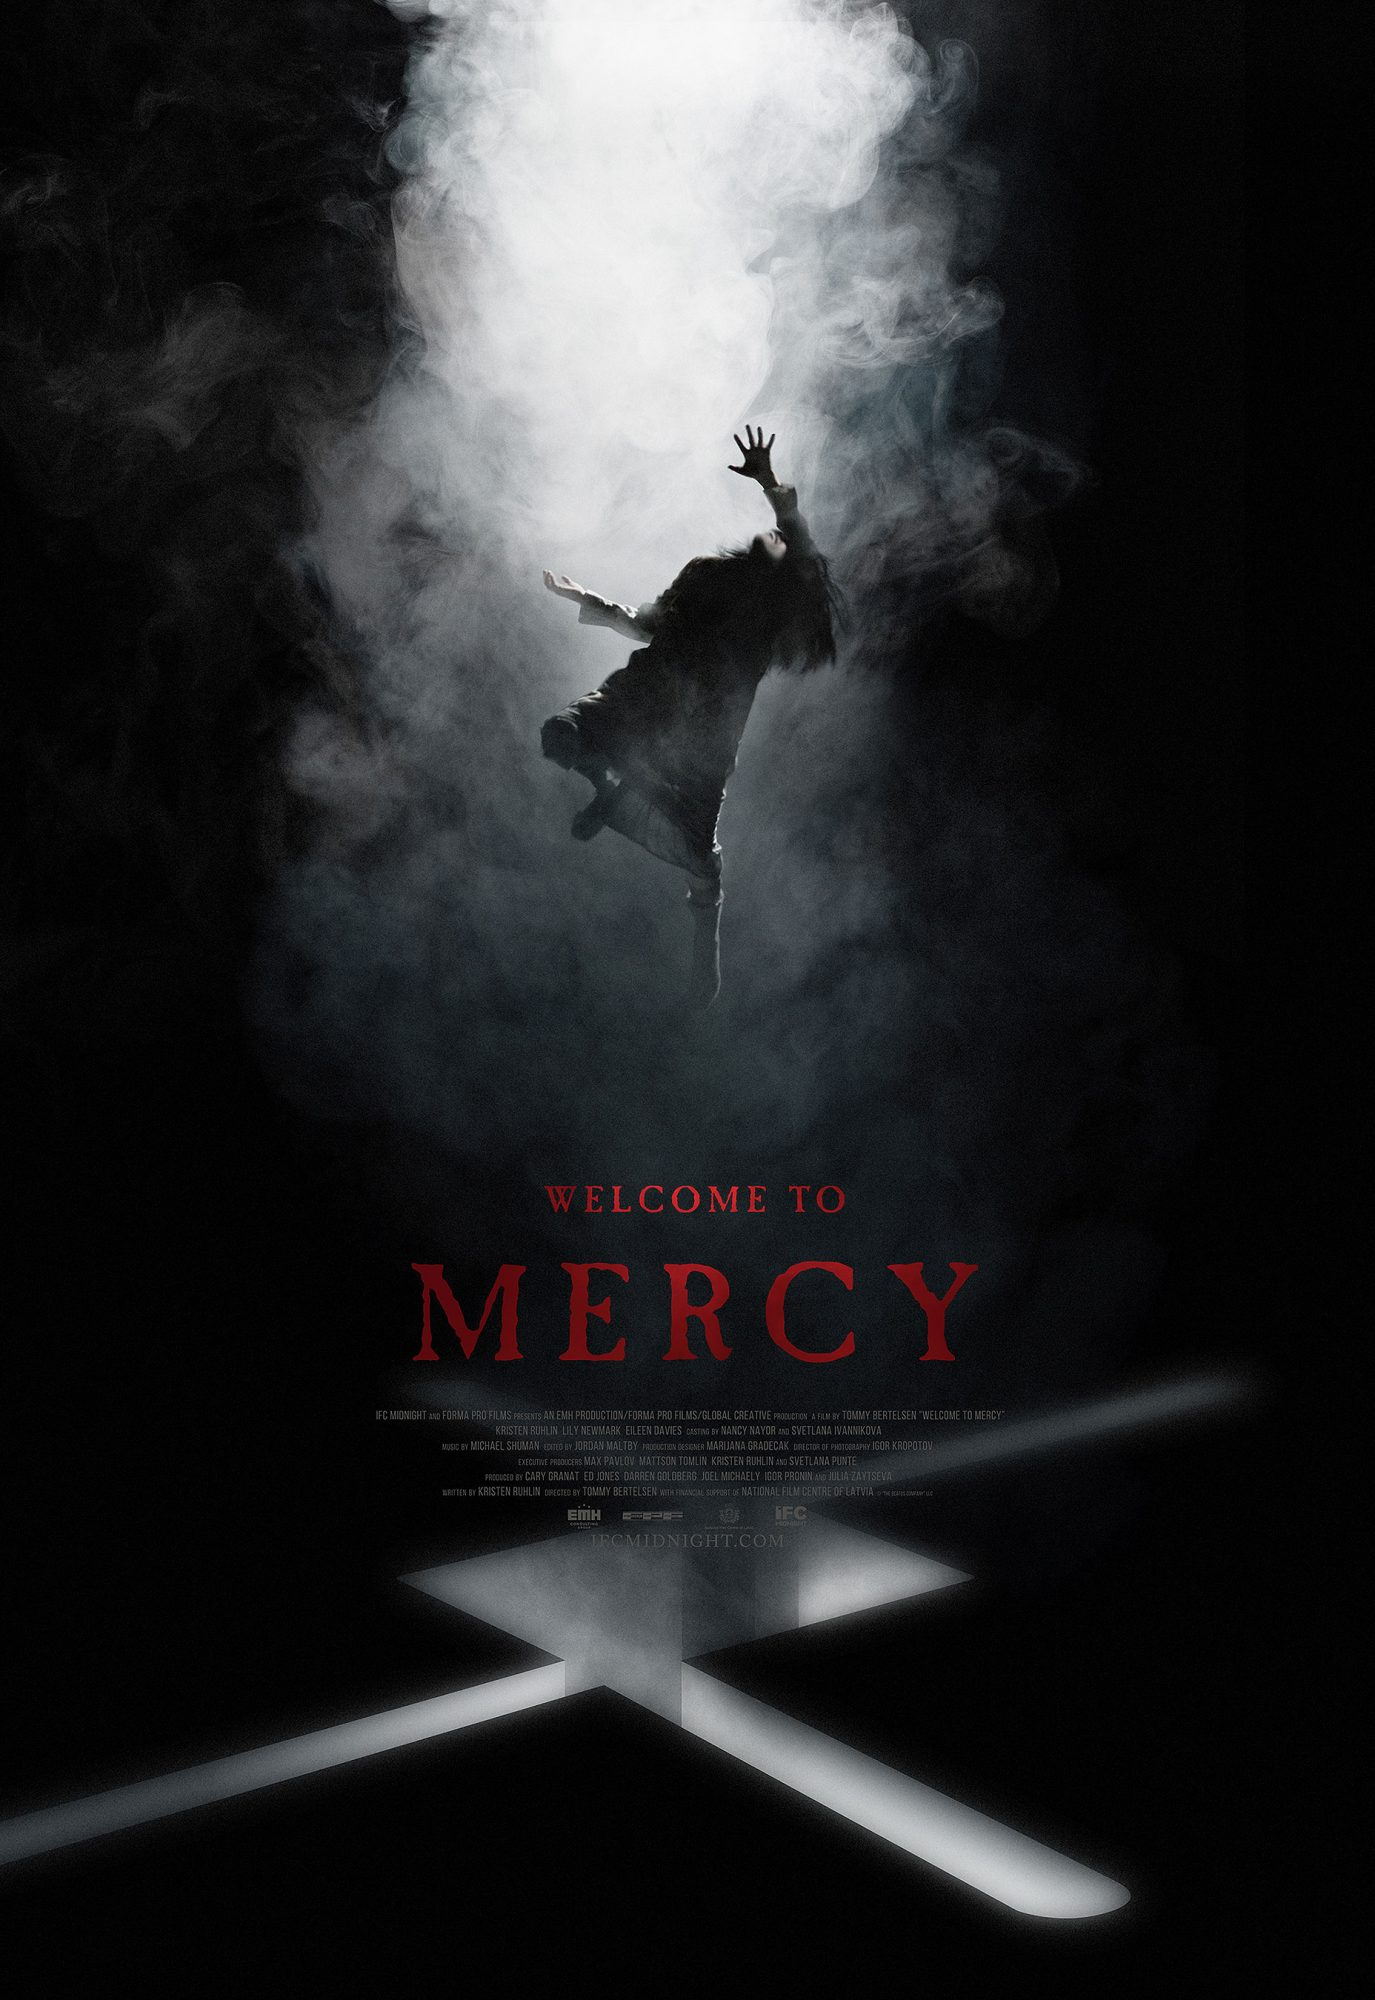 'Welcome to Mercy' trailer promises more terrifying nunsploitation!